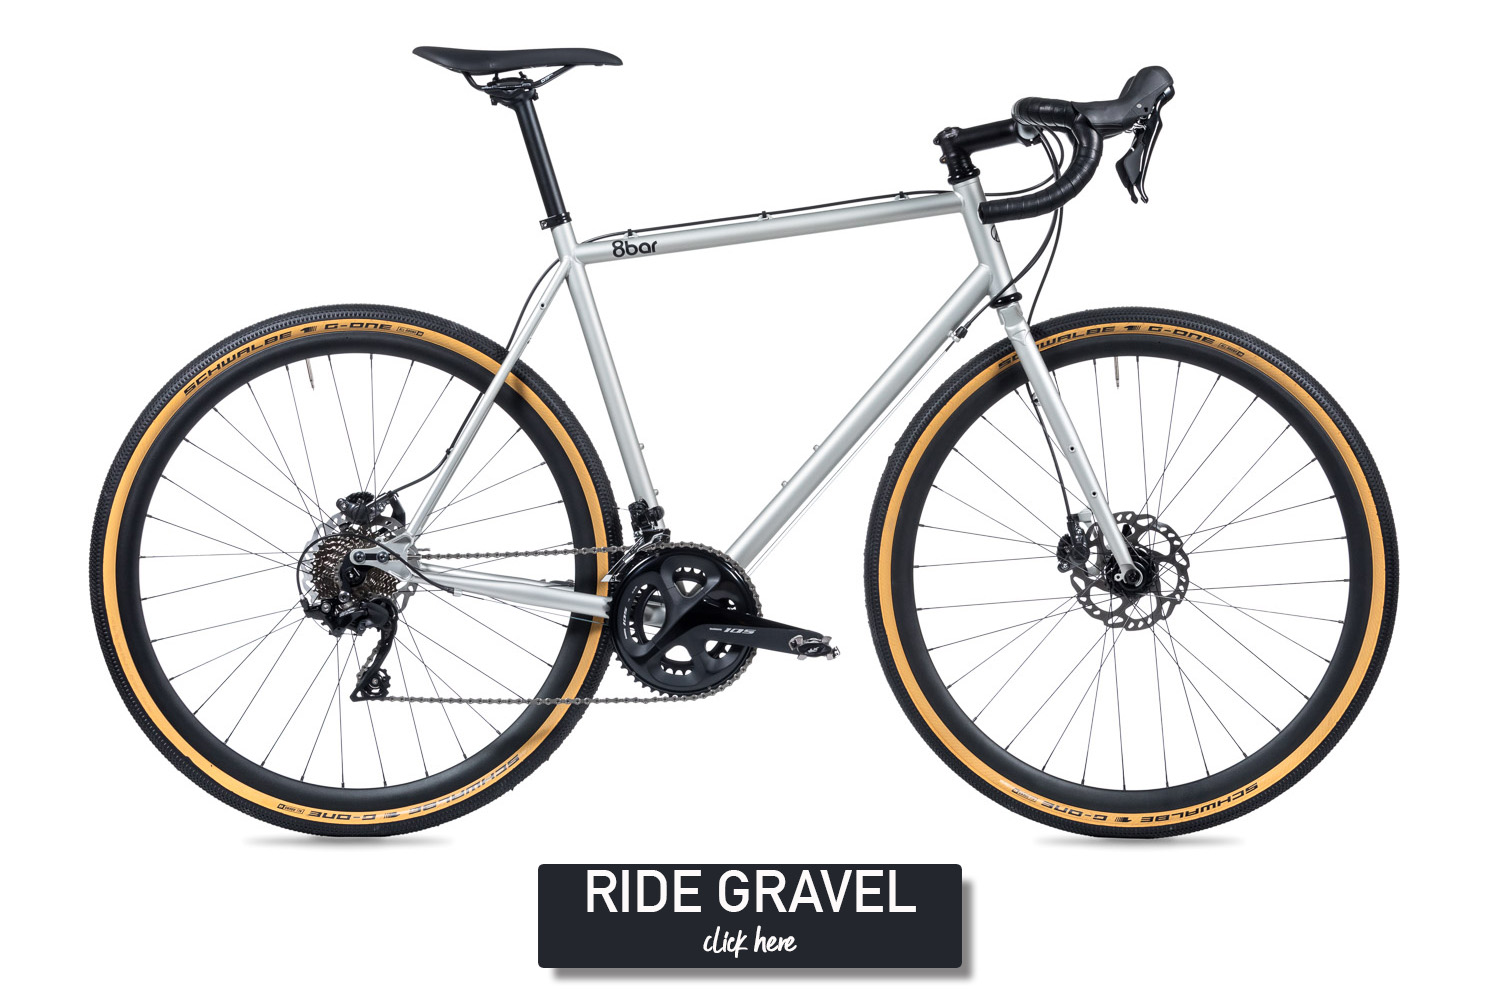 Silver grey bike on a white background.It is a silver grey 8bar Mitte Steel with skinwall tires,disc brakes and Shimano 105 groupset.